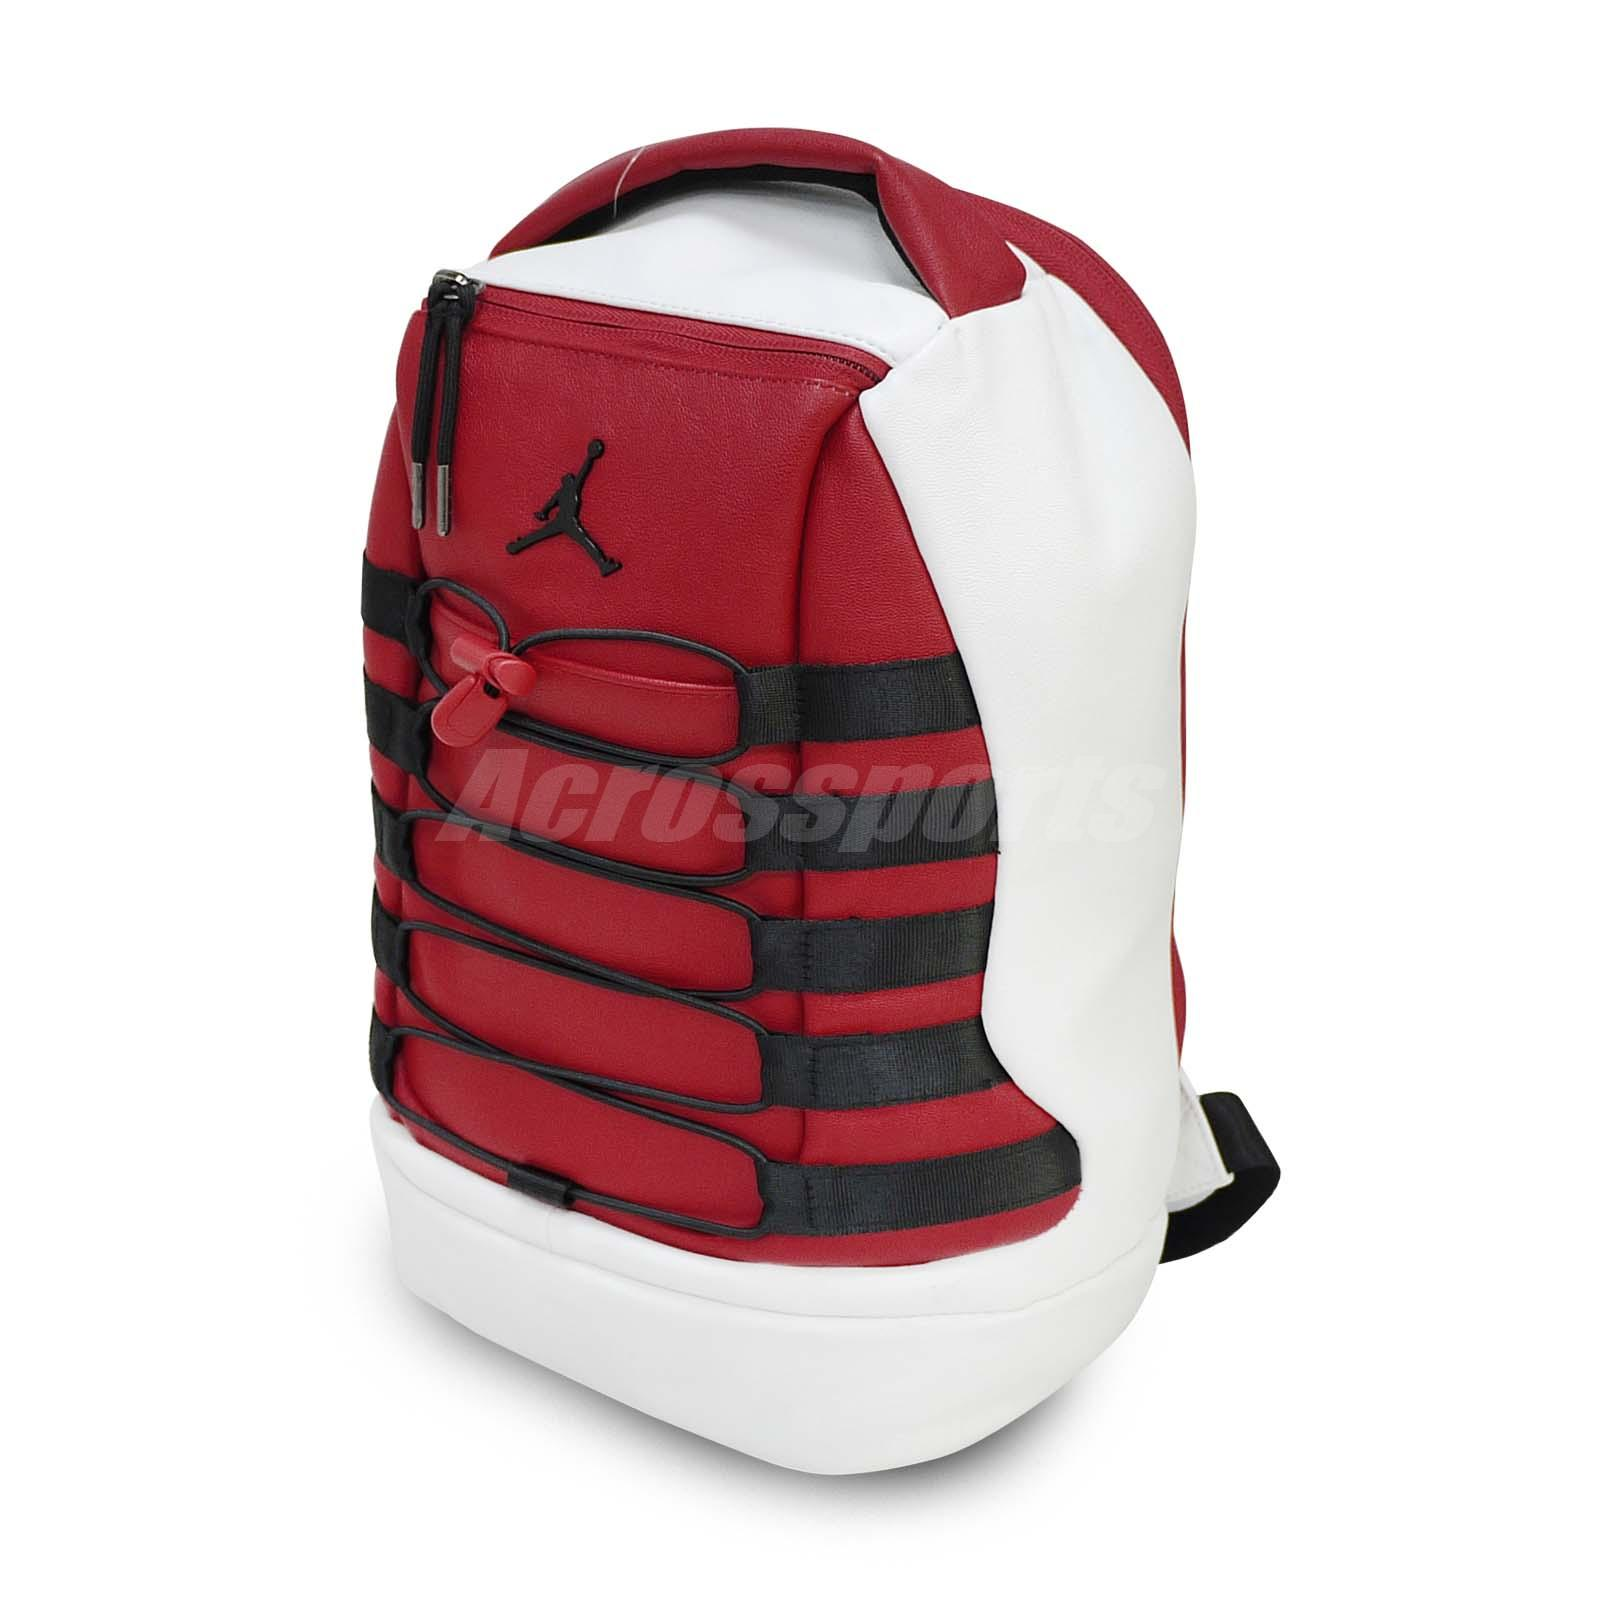 e65520e7c73282 Details about Nike Jordan Retro 10 X Chicago Black Red White Mini Backpack  Bookbag 12.5L Air